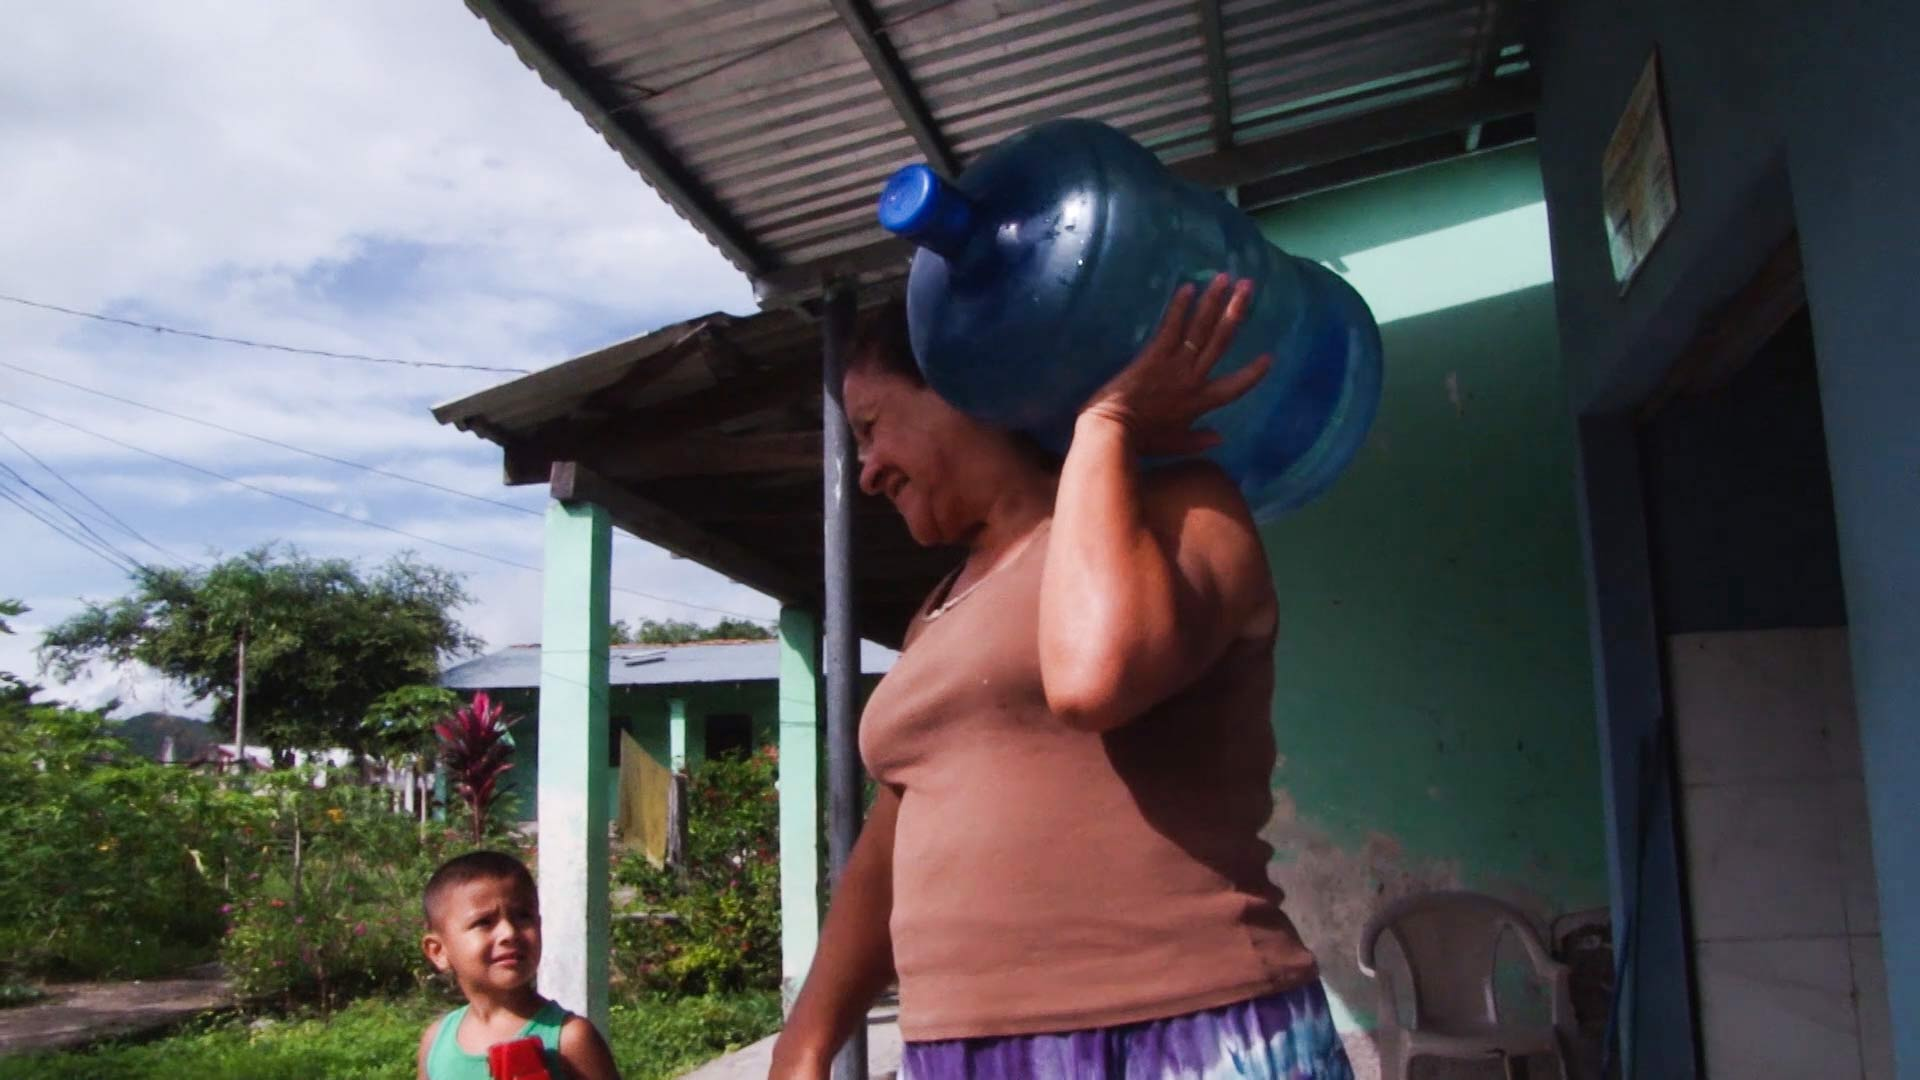 A woman retrieves potable water in Honduras.